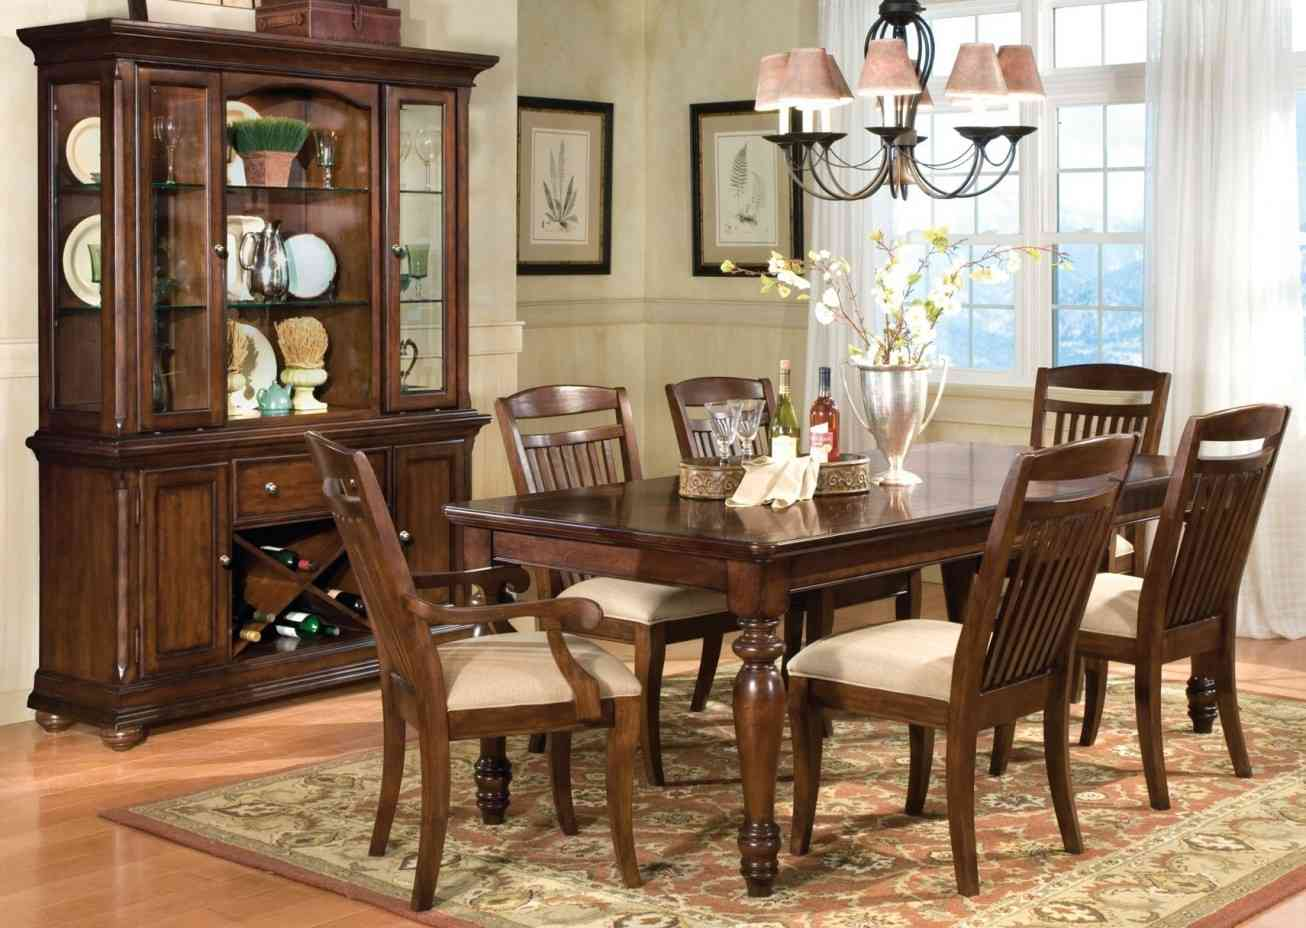 Bedcock Furniture | Cheap Furniture Buffalo Ny | Cheap Wicker Patio Furniture